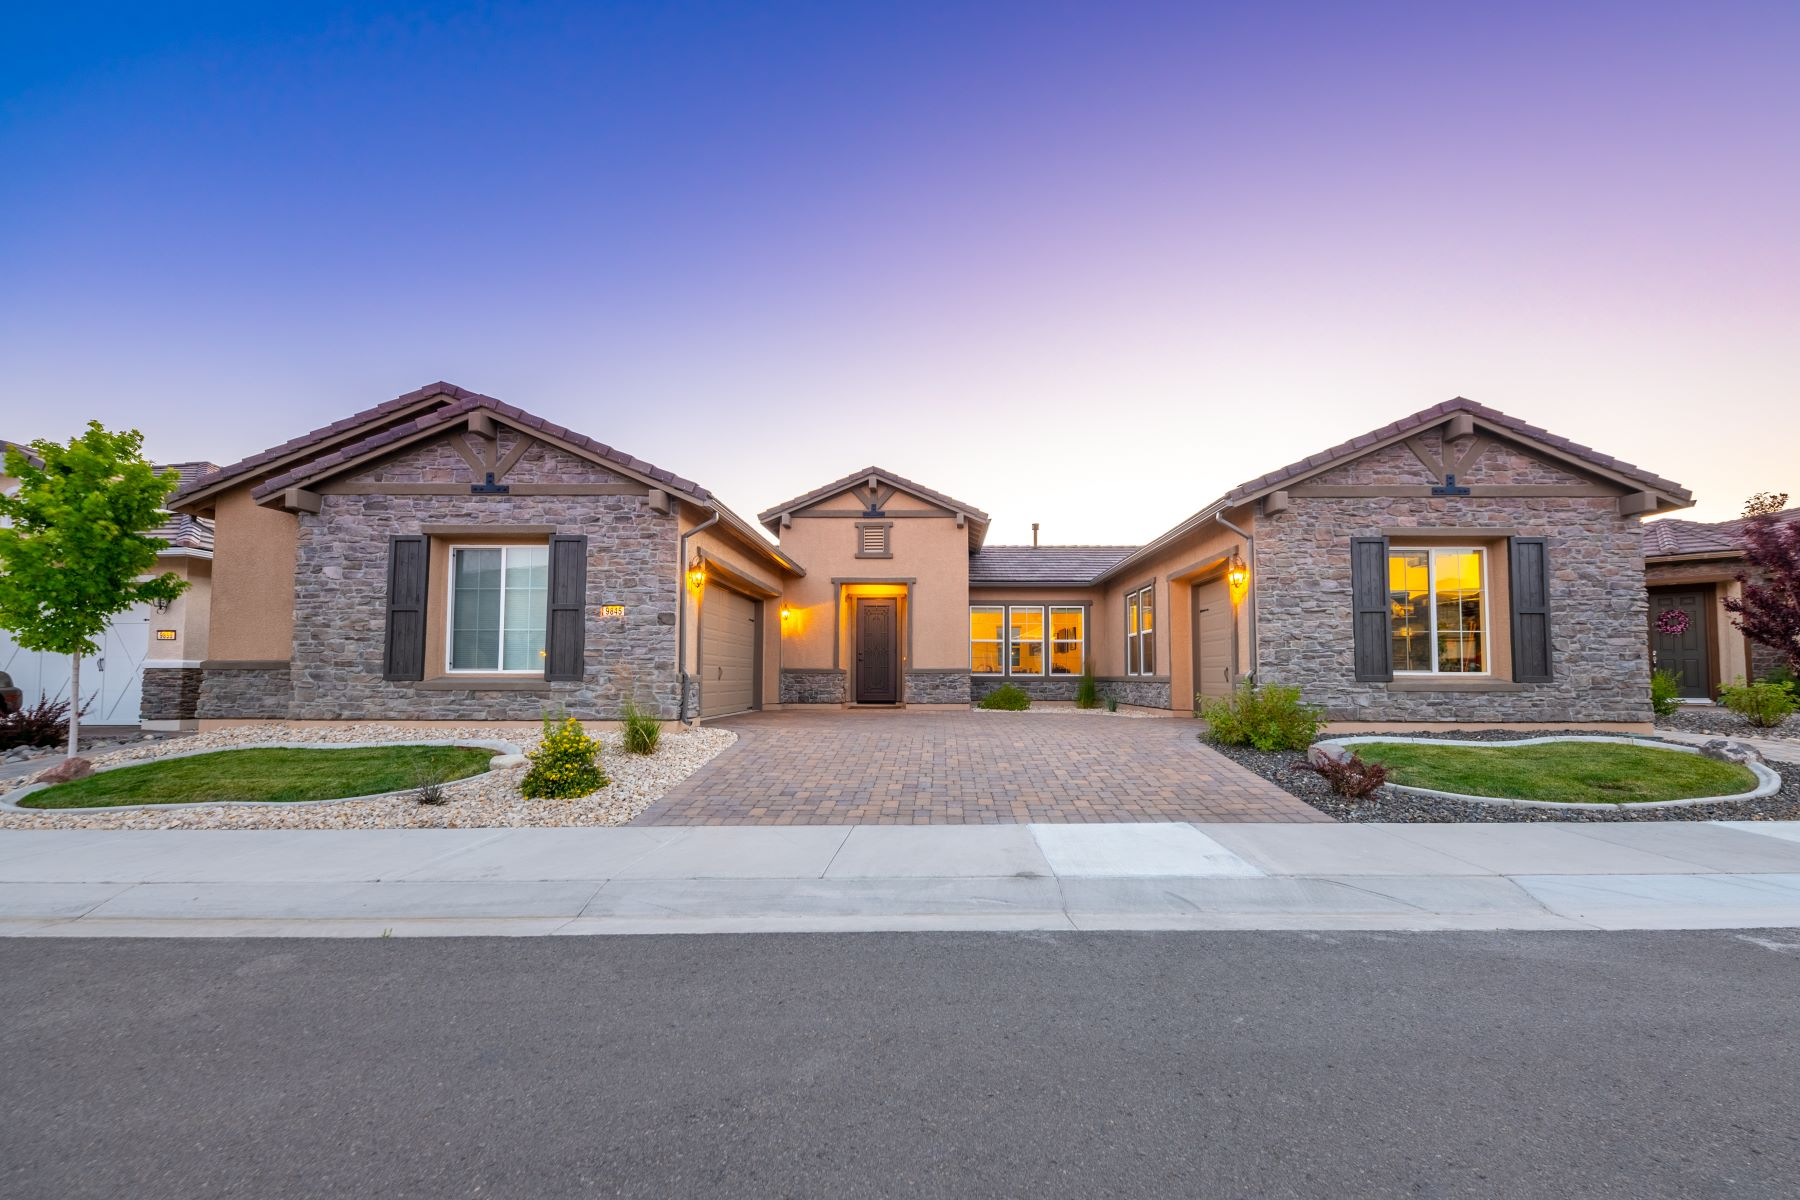 Single Family Homes for Active at Regency at Damonte Ranch 9845 Shadowless Trail Reno, Nevada 89521 United States